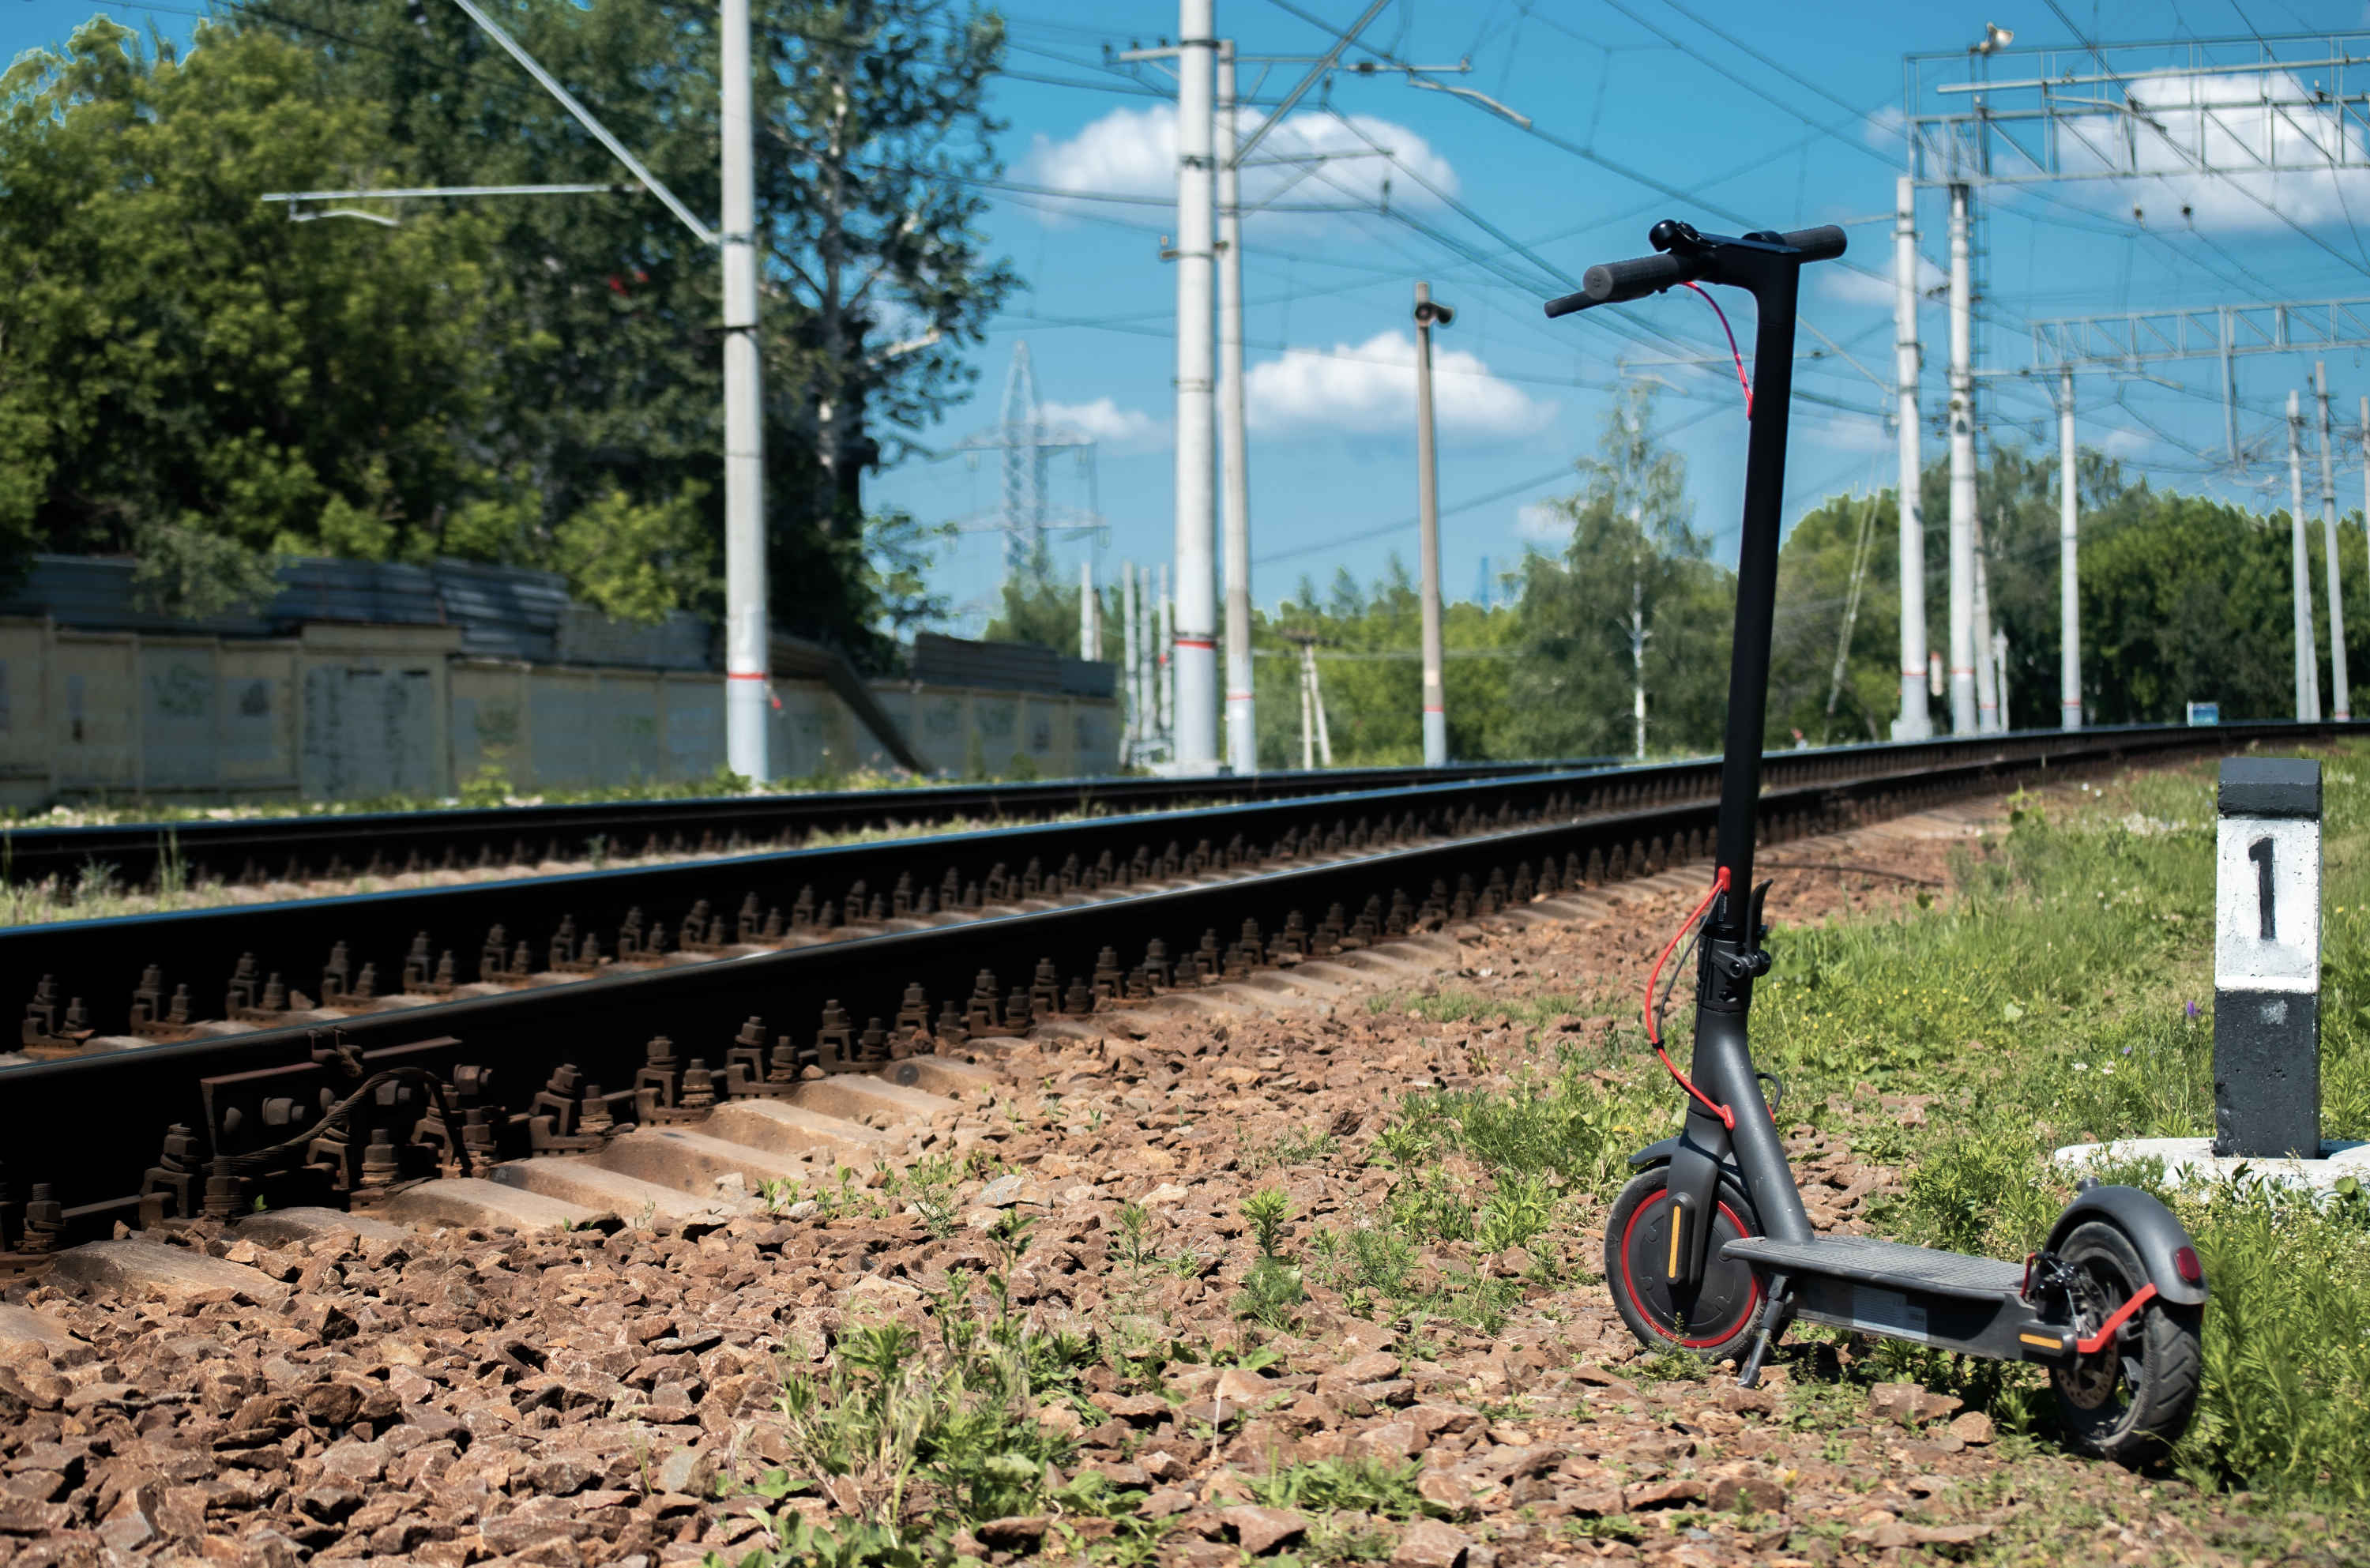 An electric scooter stands parked by a railway line.